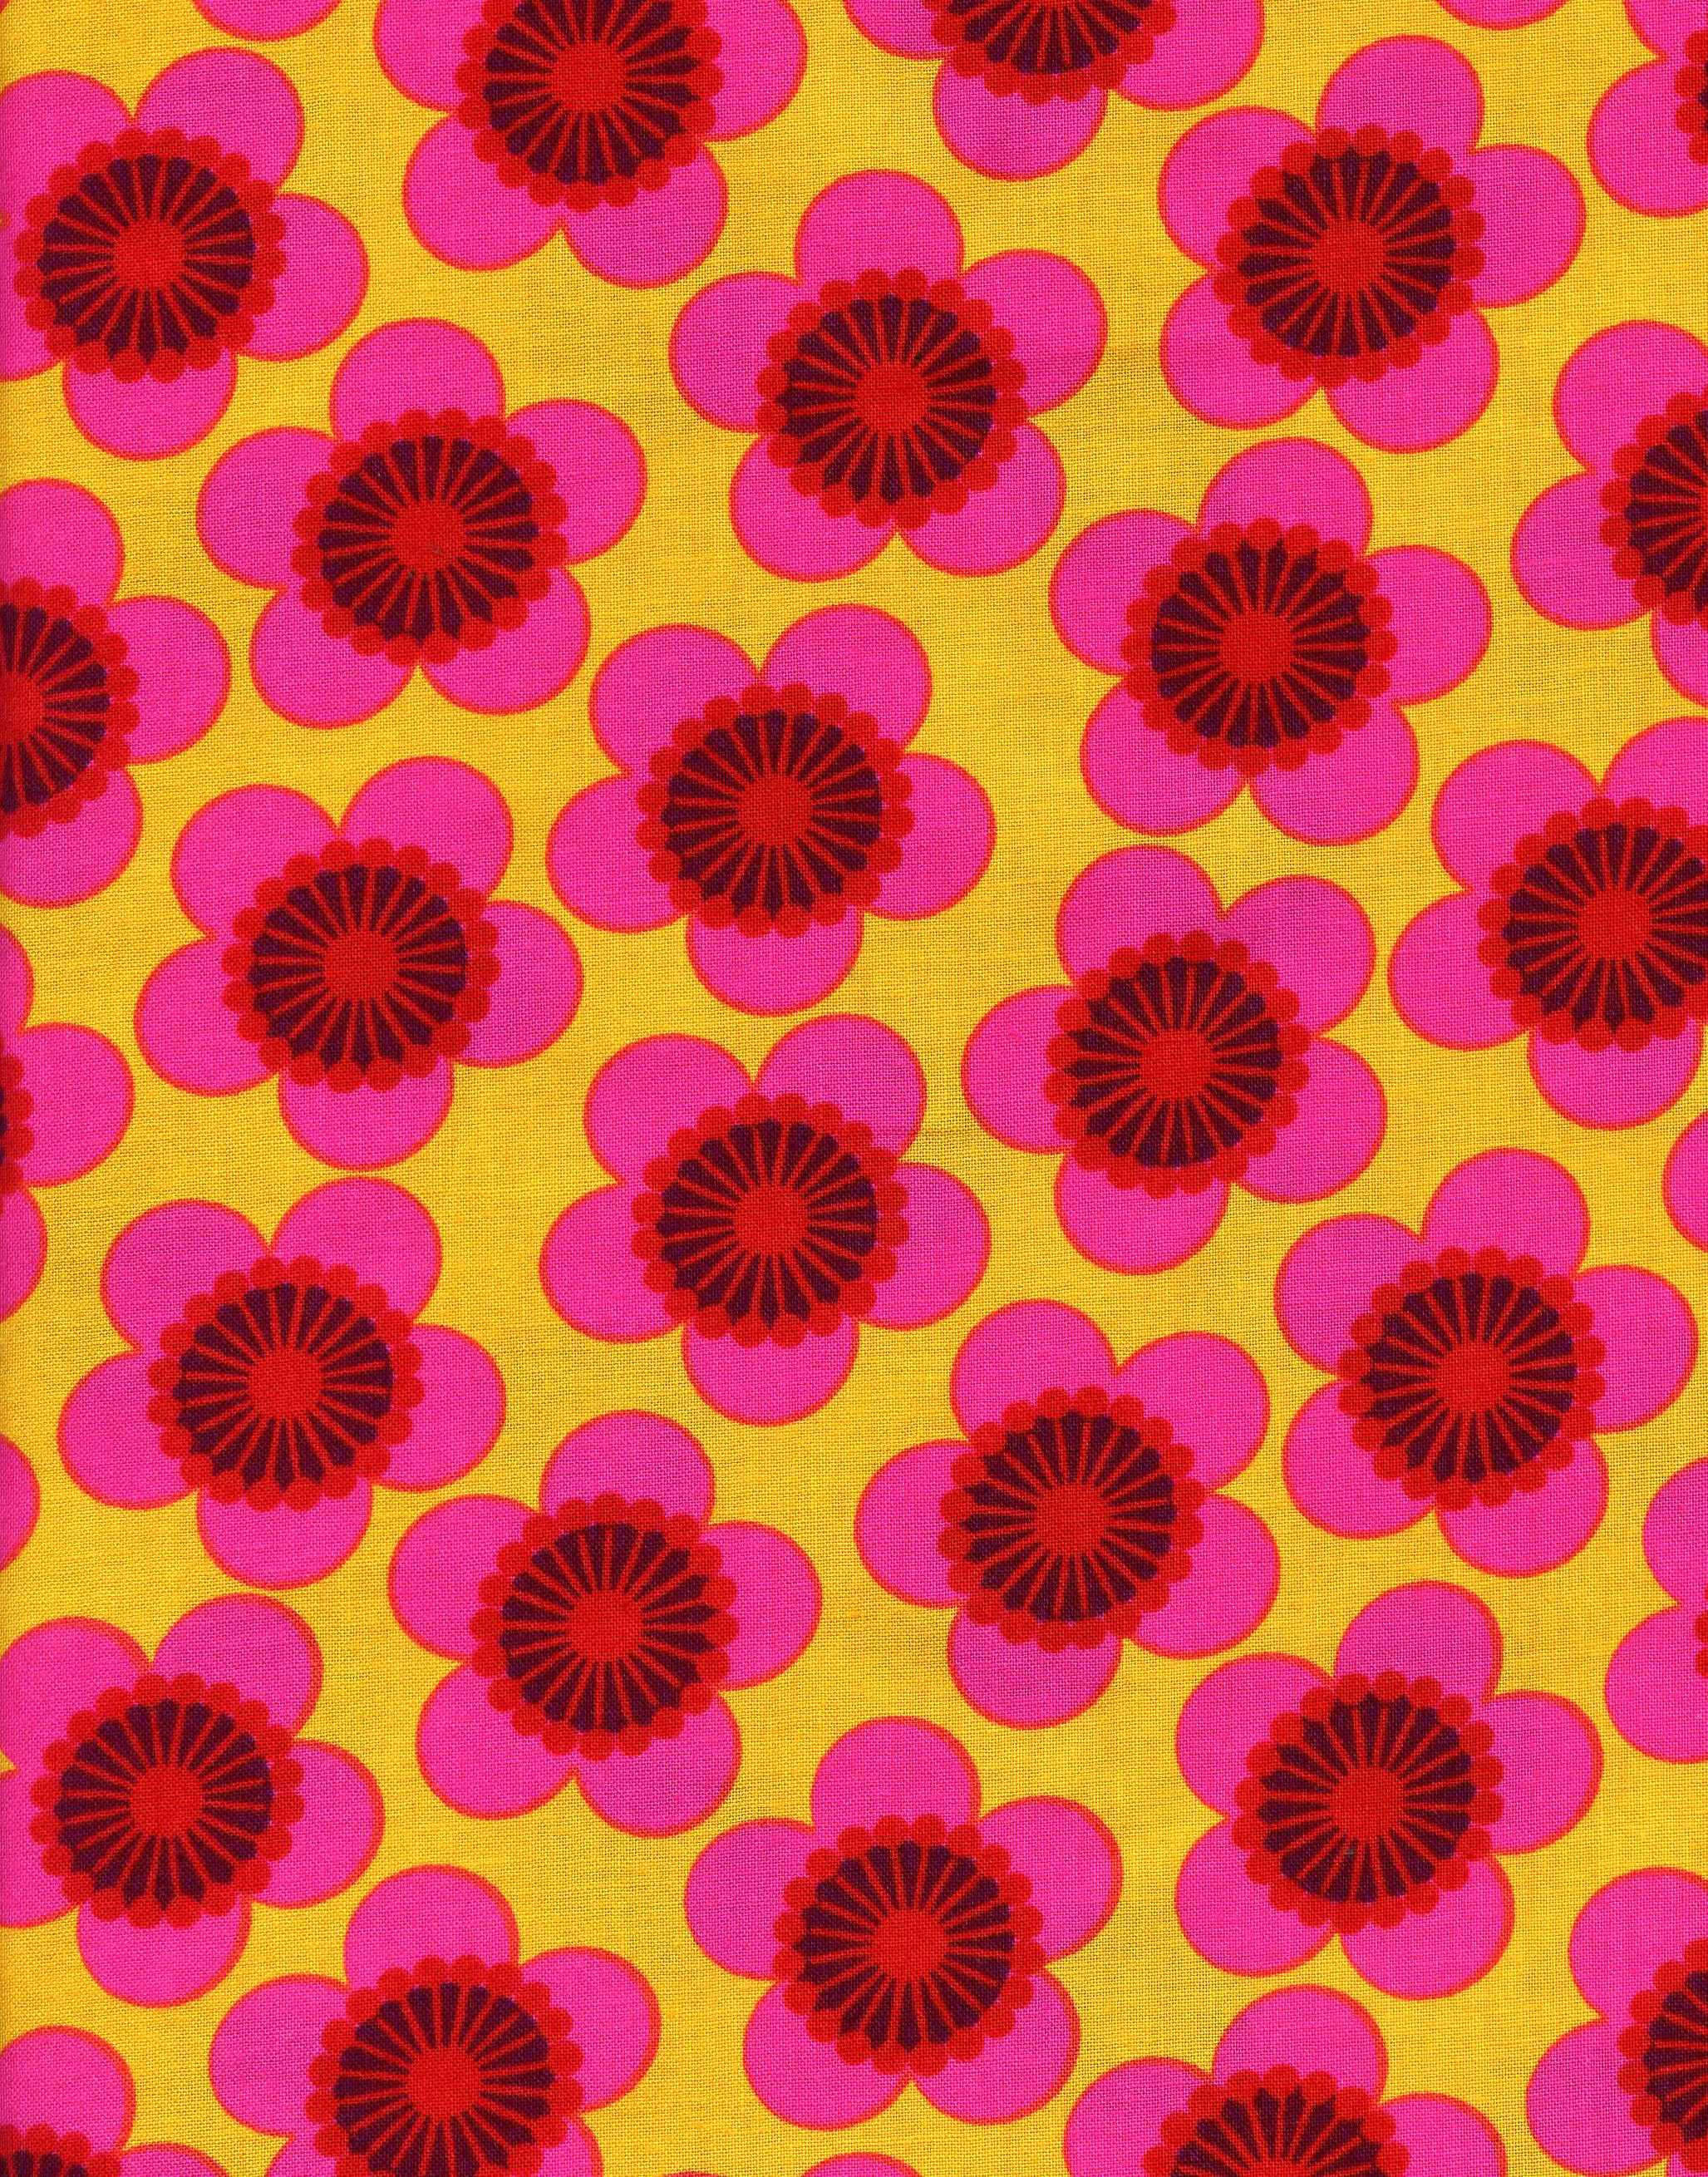 Yellow with Pink Daisy Print